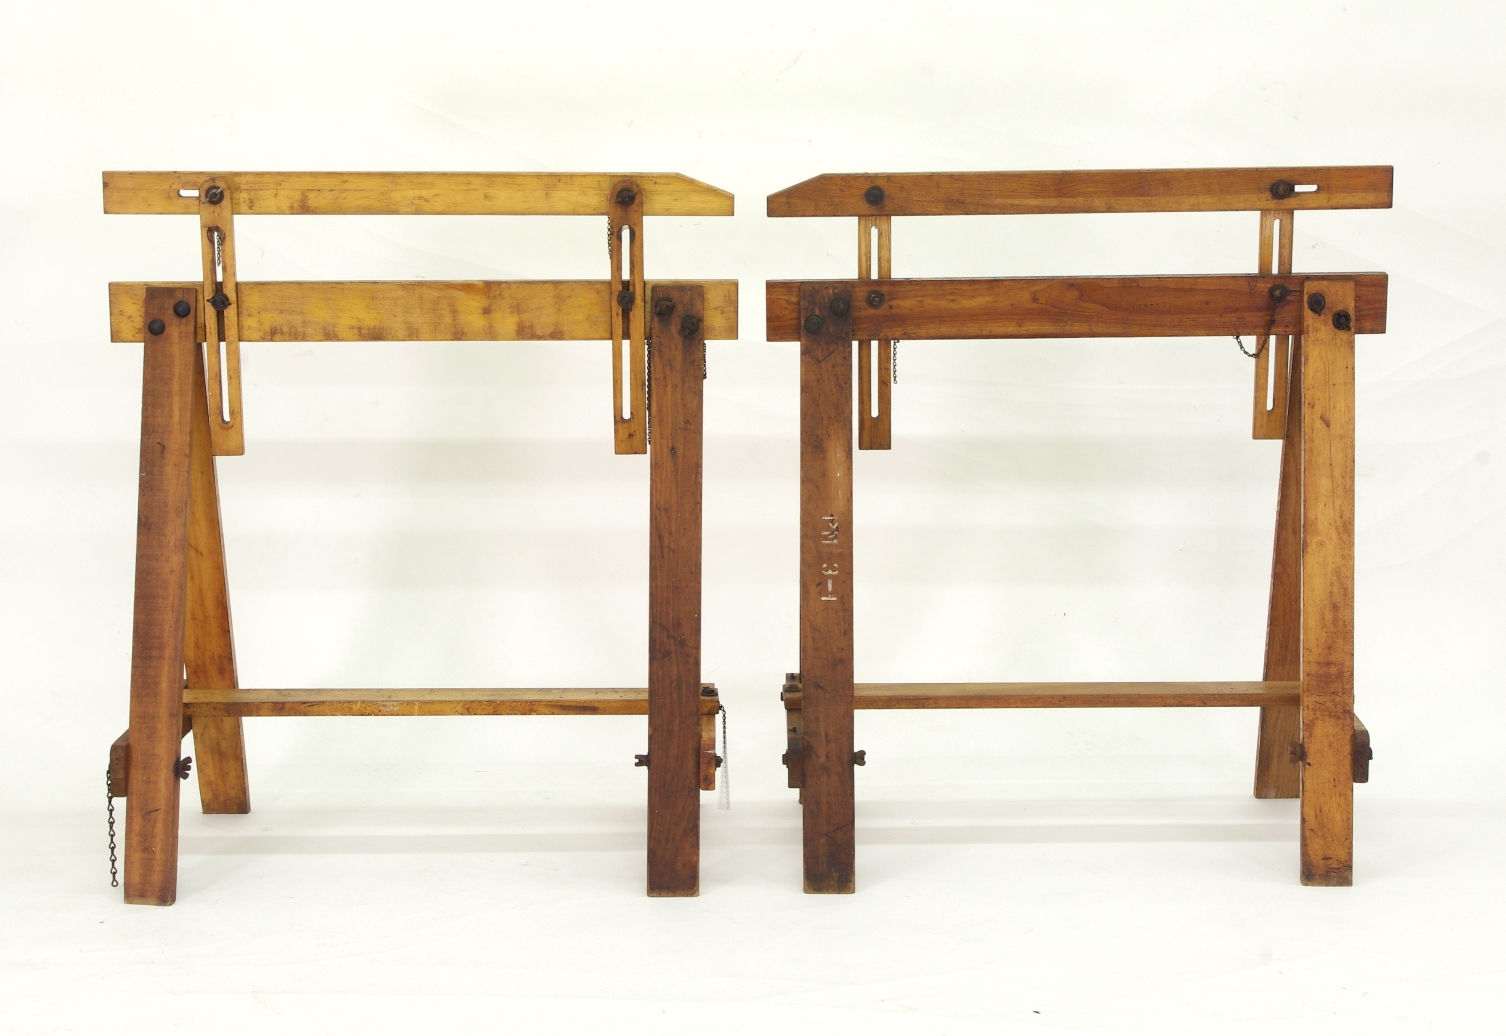 View 3: Pair of Adjustable Sawhorses c. 1920